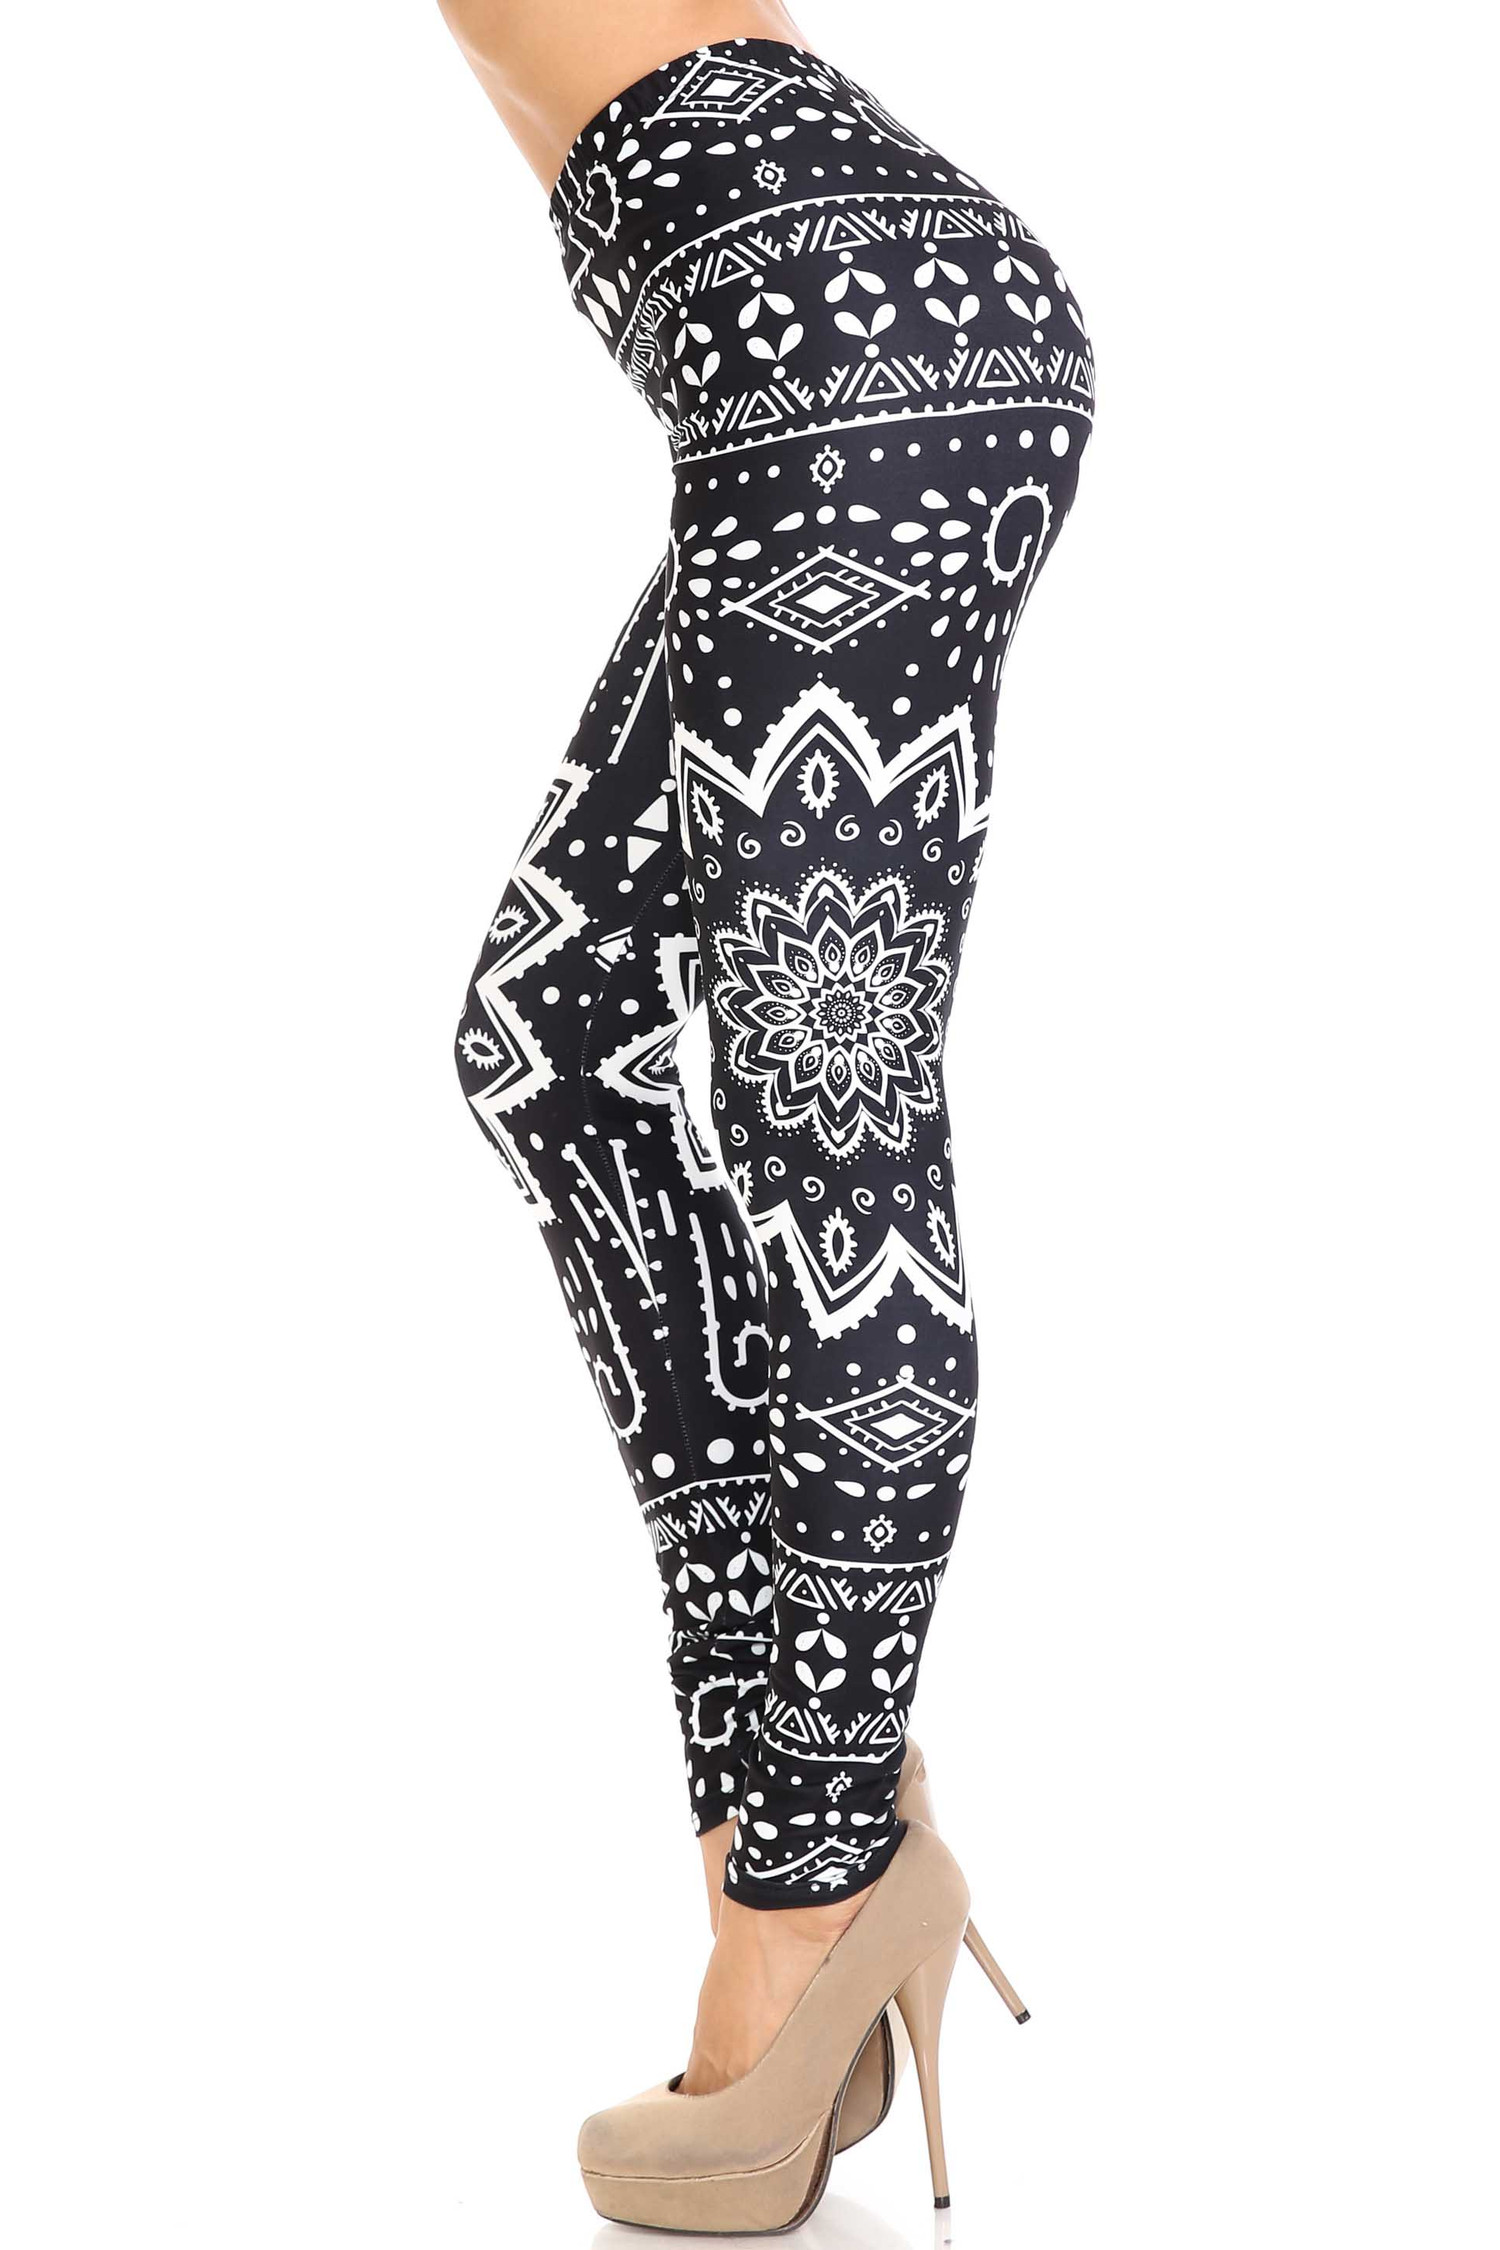 Creamy Soft Black Tribal Mandala Leggings - By USA Fashion™